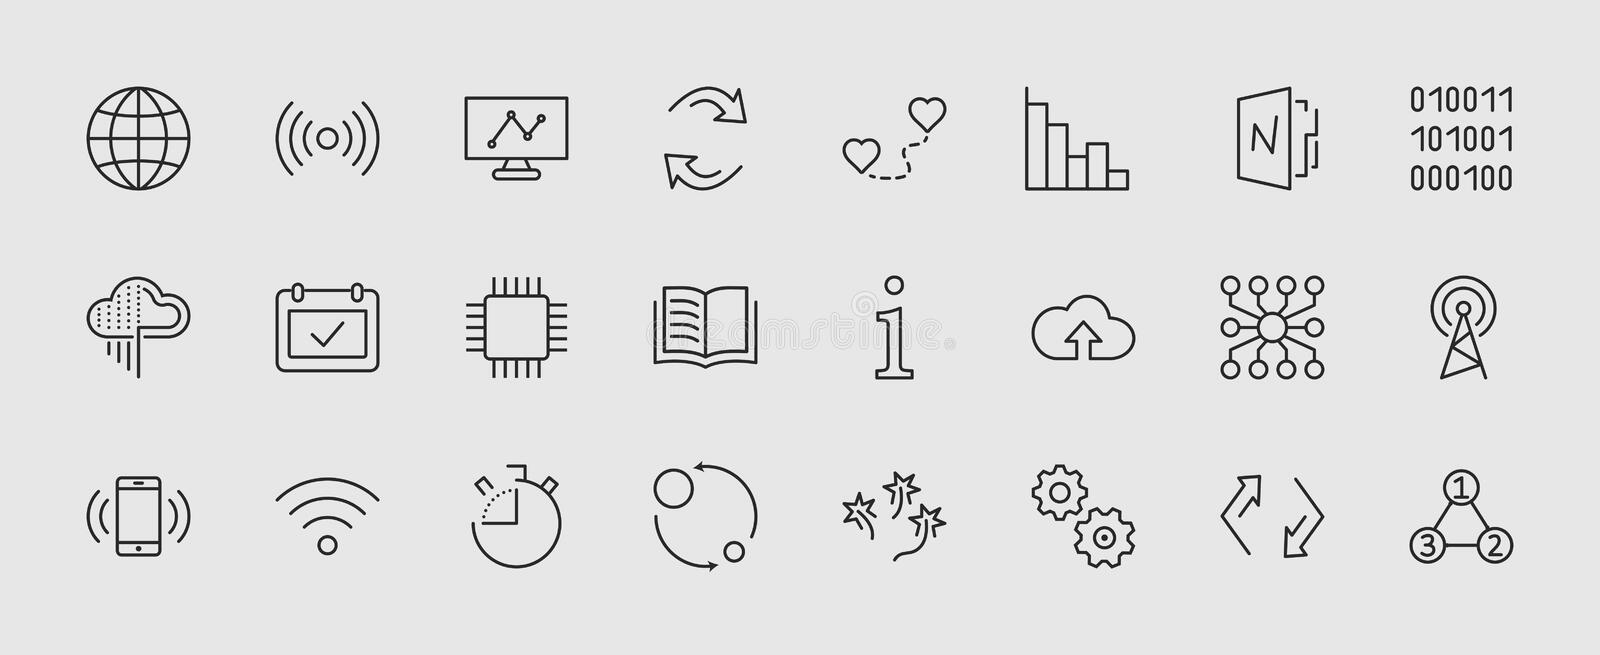 Set of Data Analysis Related Technology Vector Line Icons. Contains such Icons as Charts, Wi-fi, Graphs, Traffic. Analysis, Big Data and more. Editable Stroke royalty free illustration